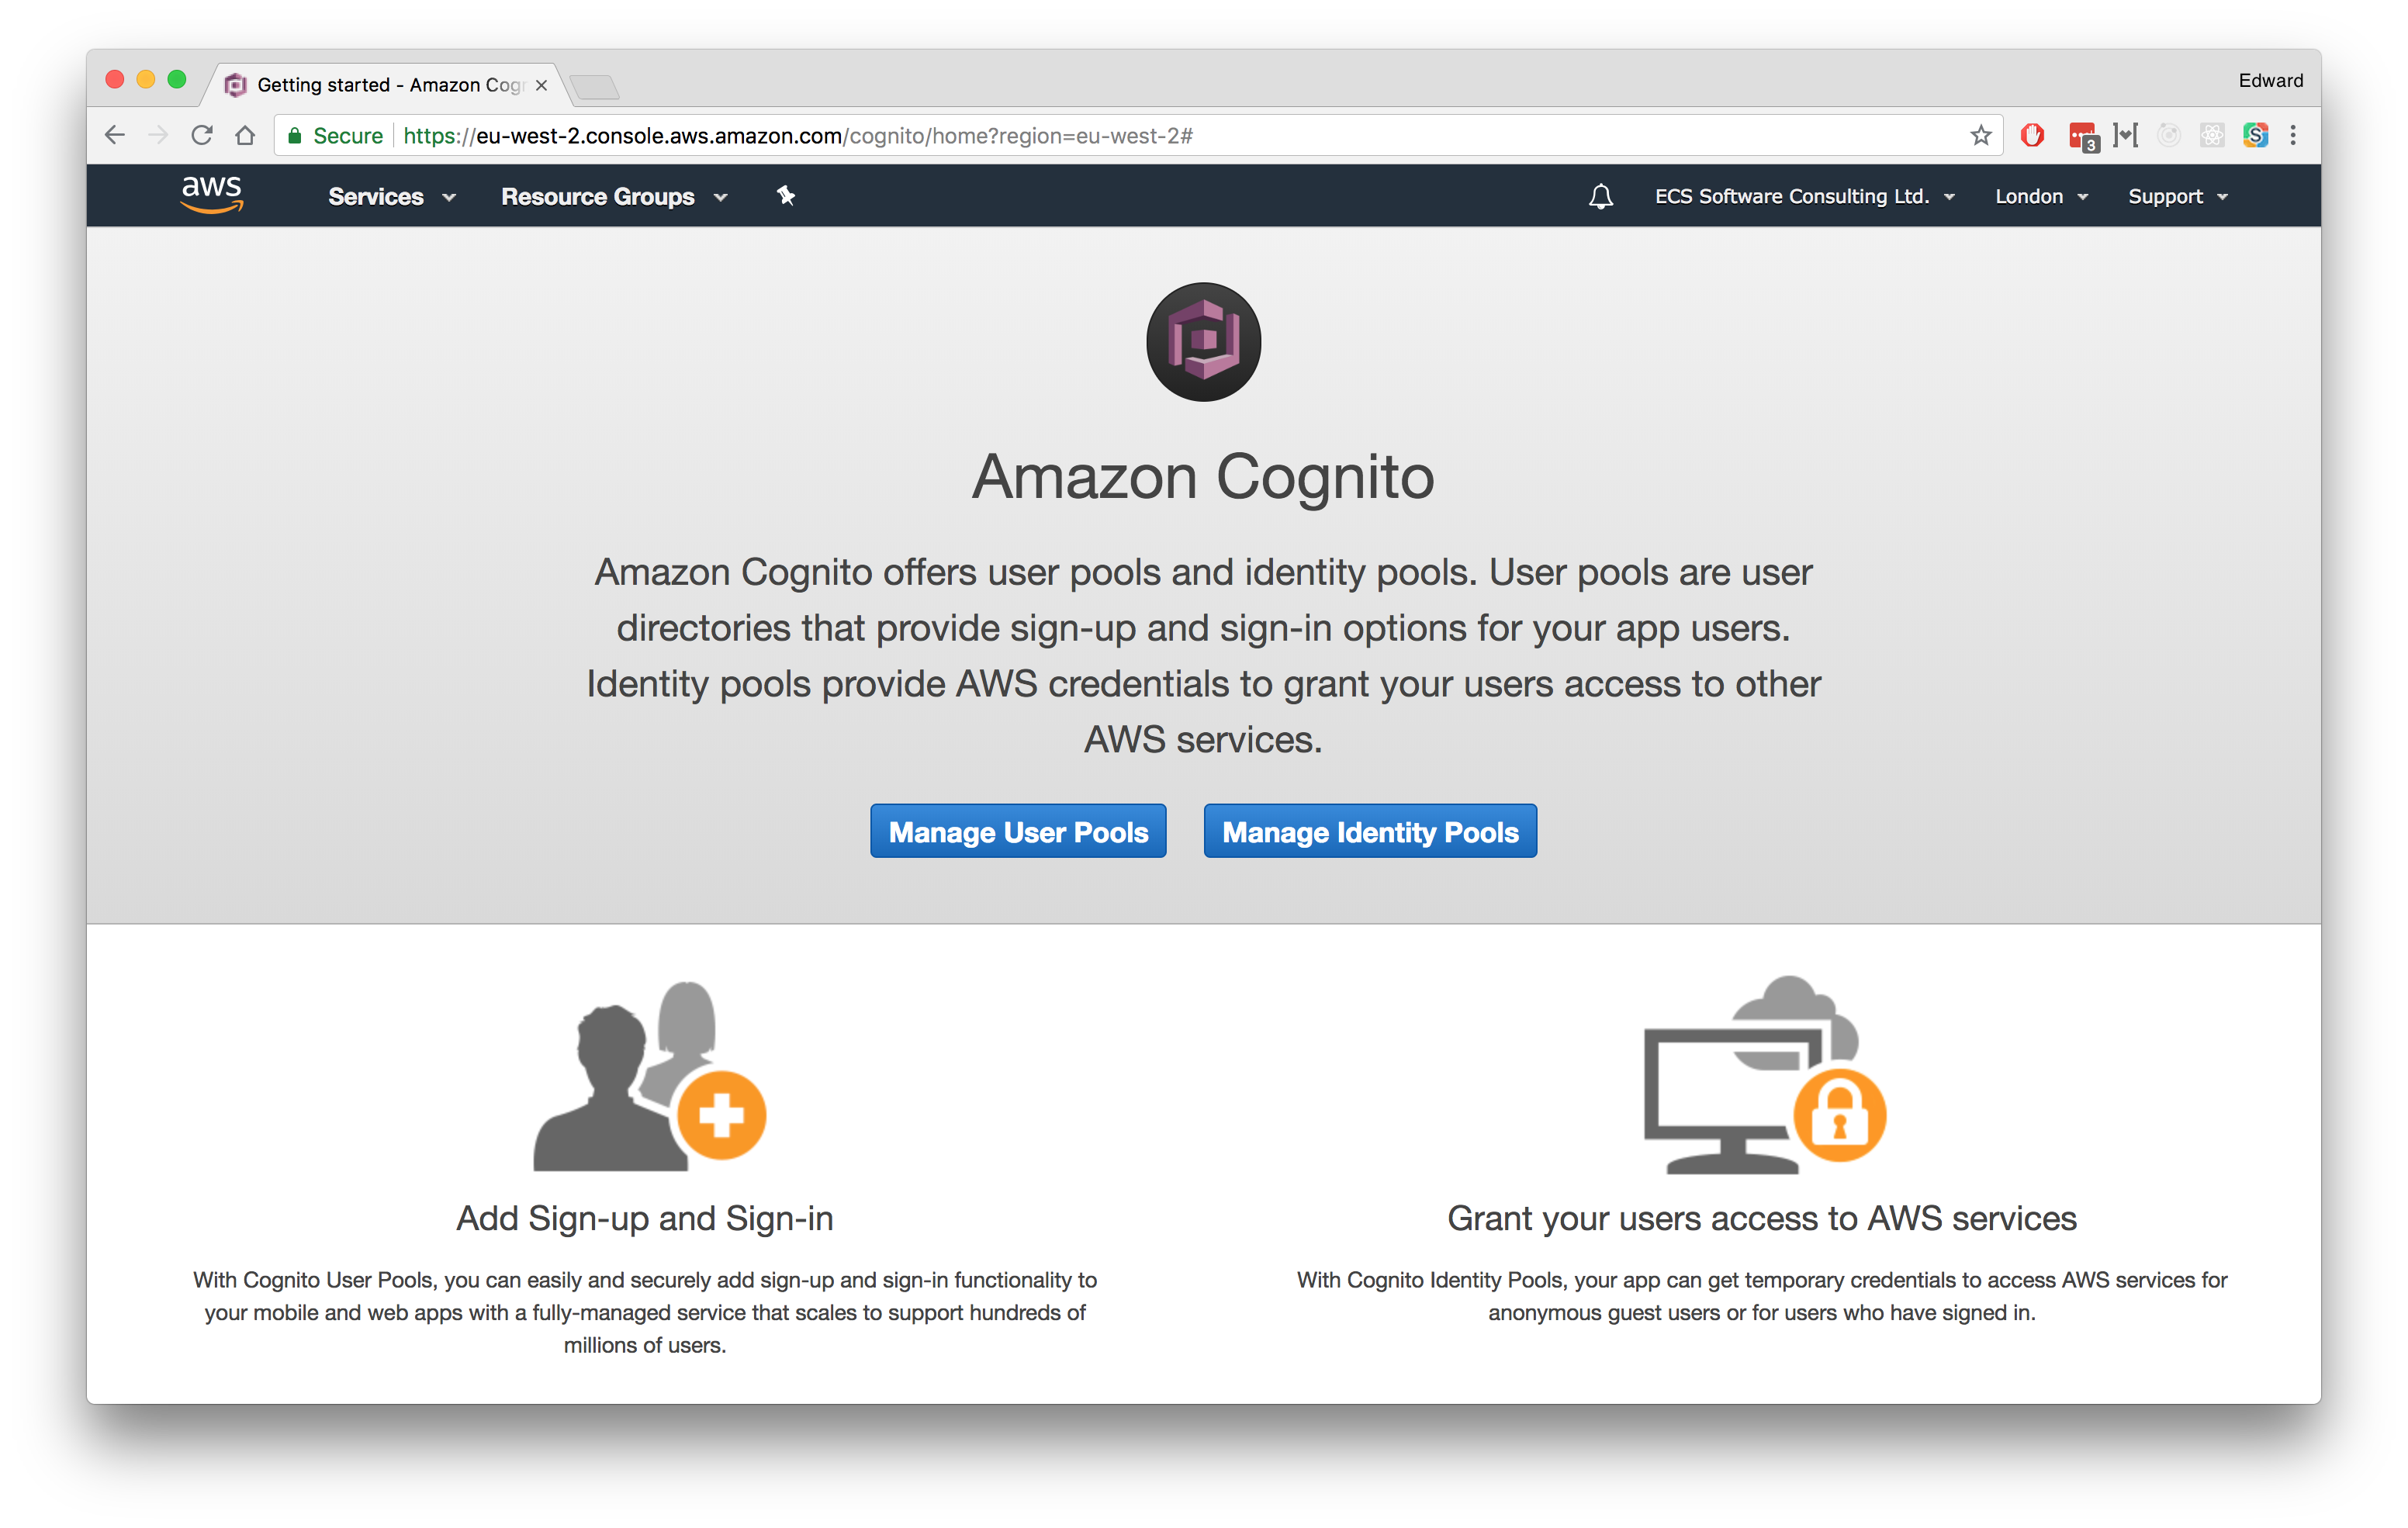 Getting Started With AWS Cognito | Edward Coleridge Smith